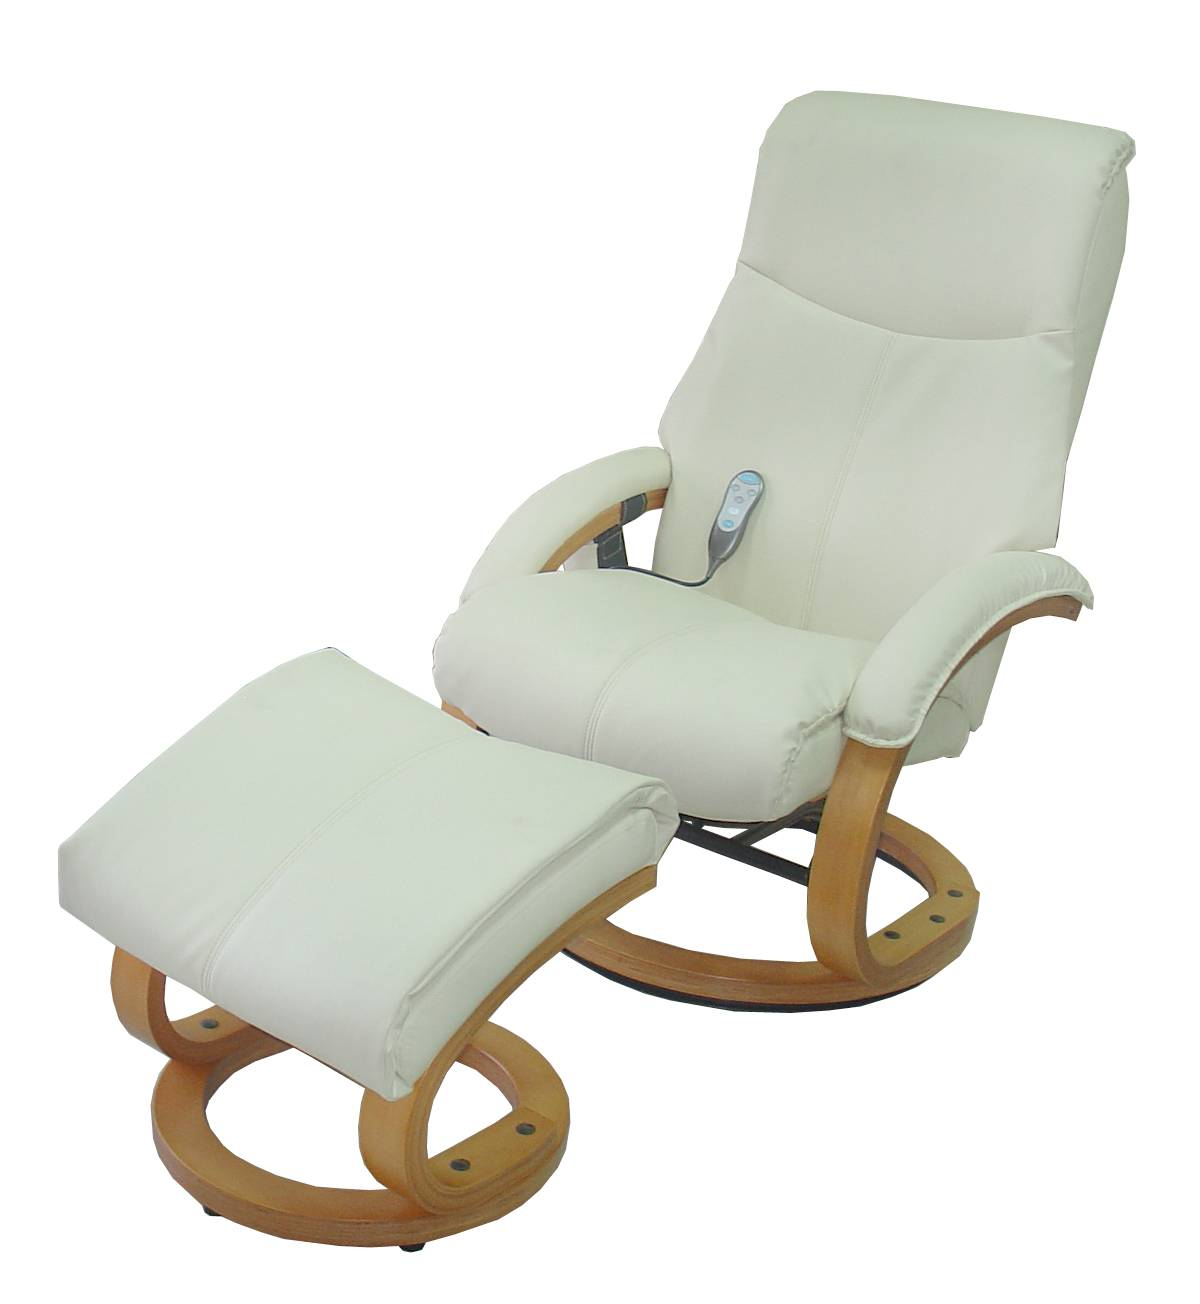 BH-8181 Massage Recliner Chair, Home Furniture, House Furniture